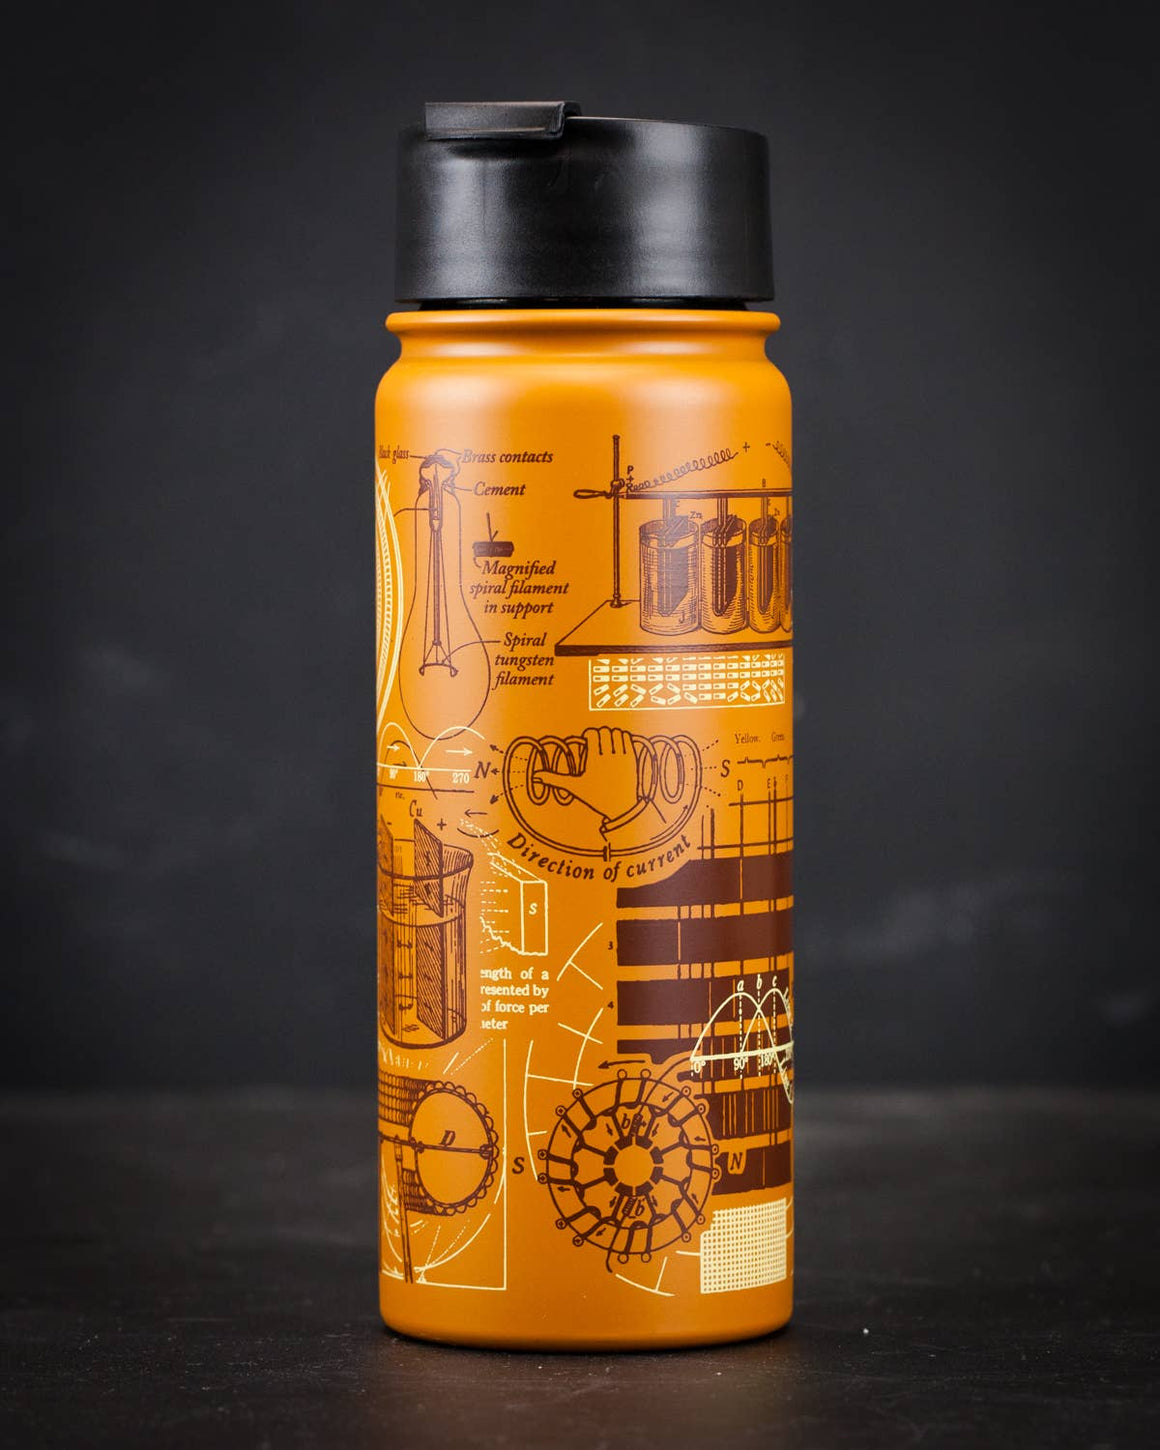 Cognitive Surplus - Physics: Electromagnetism Stainless Steel Vacuum Flask